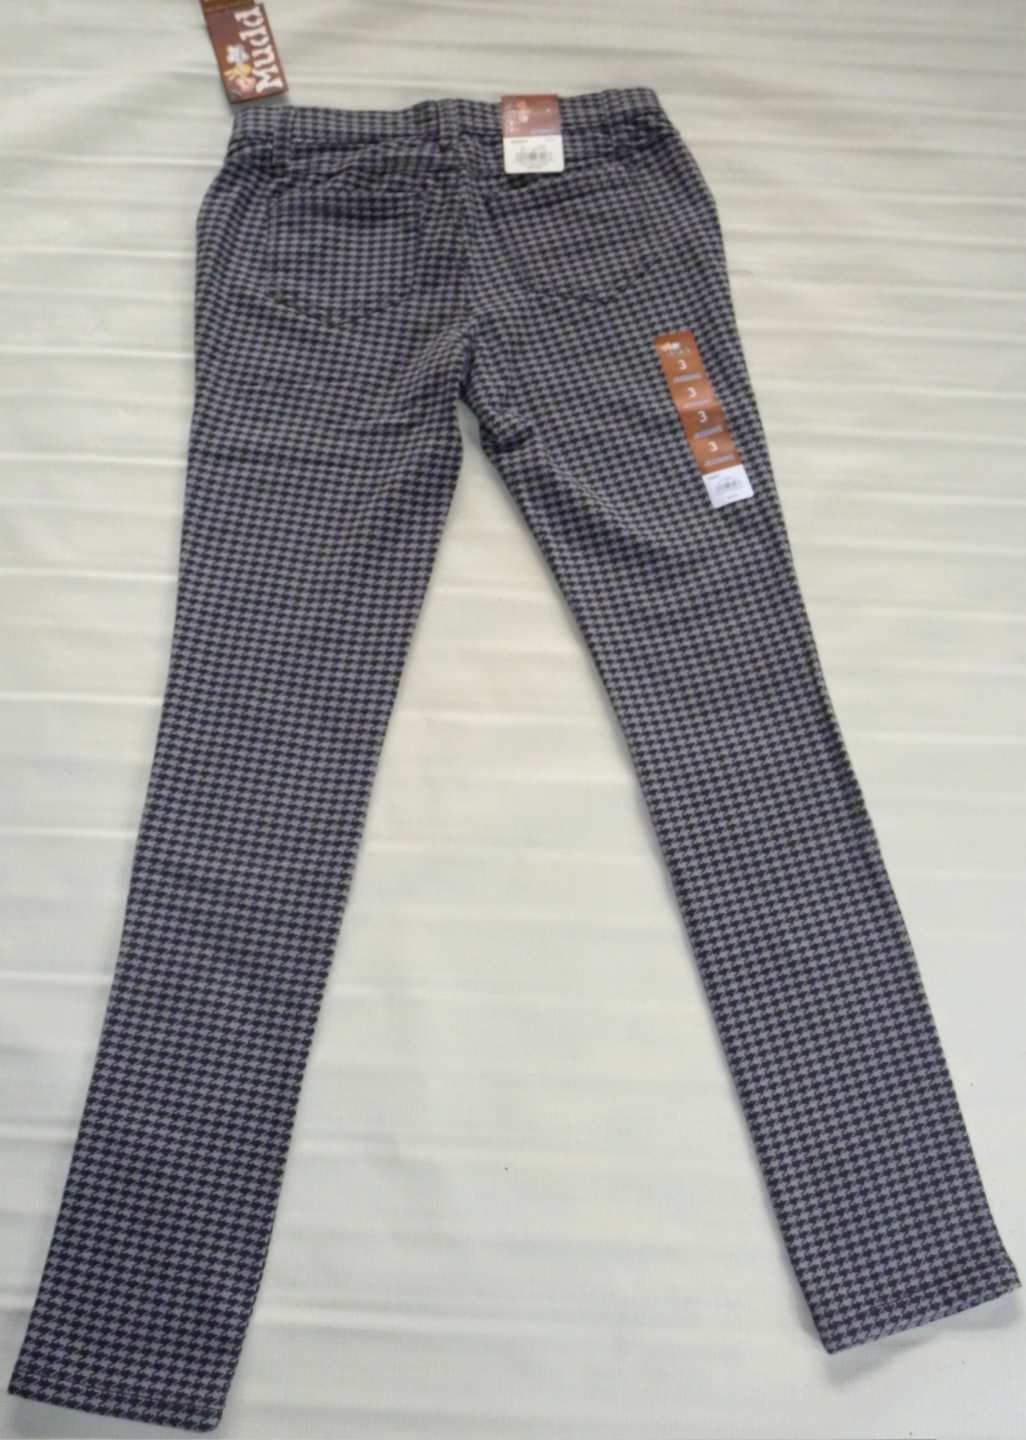 MUDD Skinny Stretch Jeggings-Houndstooth Legging Pant-Gray Black- 3 New $40 image 6